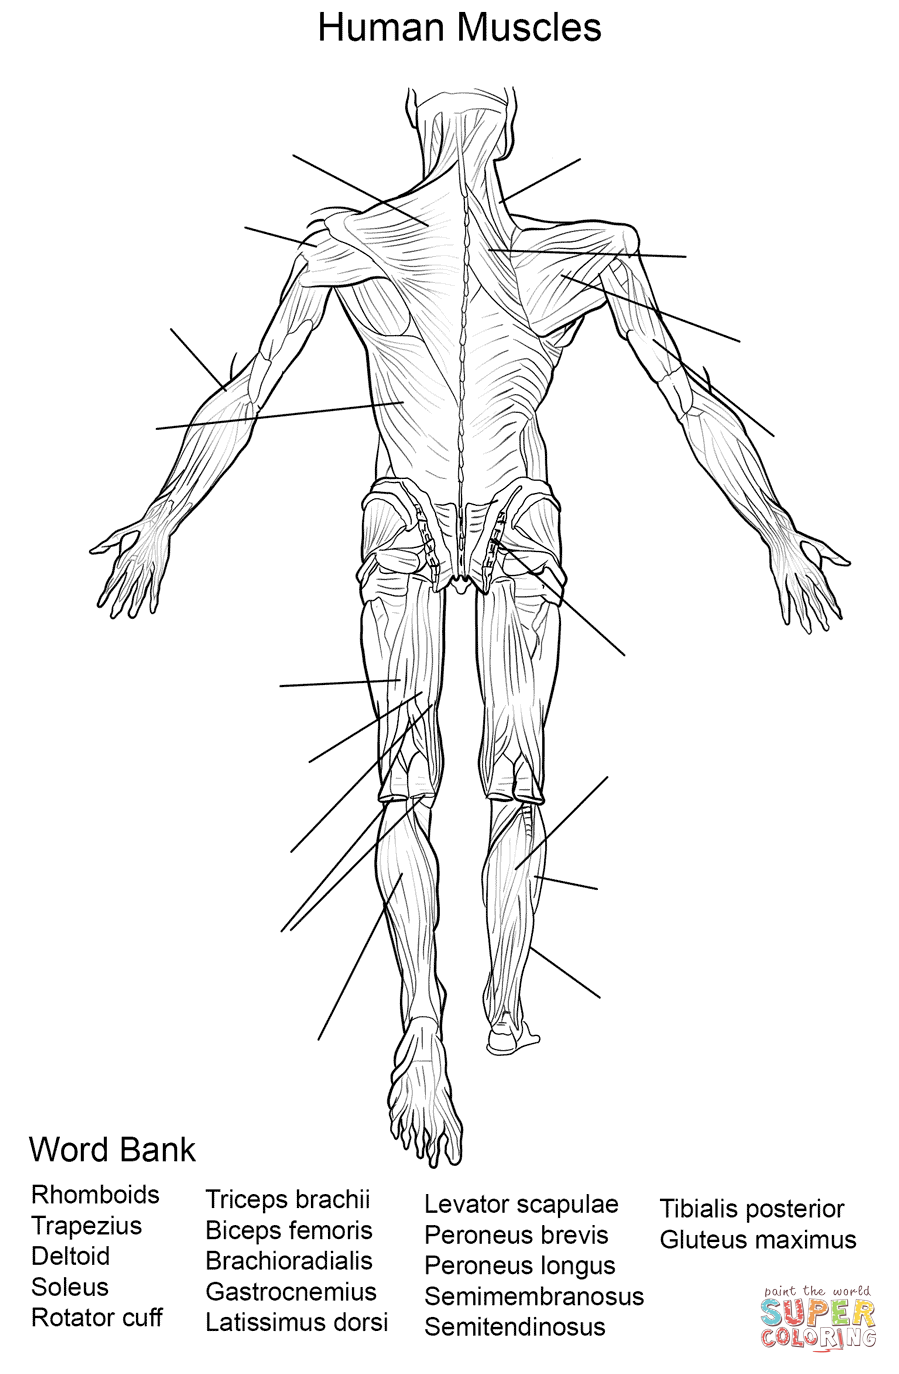 worksheet Joints Worksheet human muscles back view worksheet coloring page from anatomy category select 27278 printable crafts